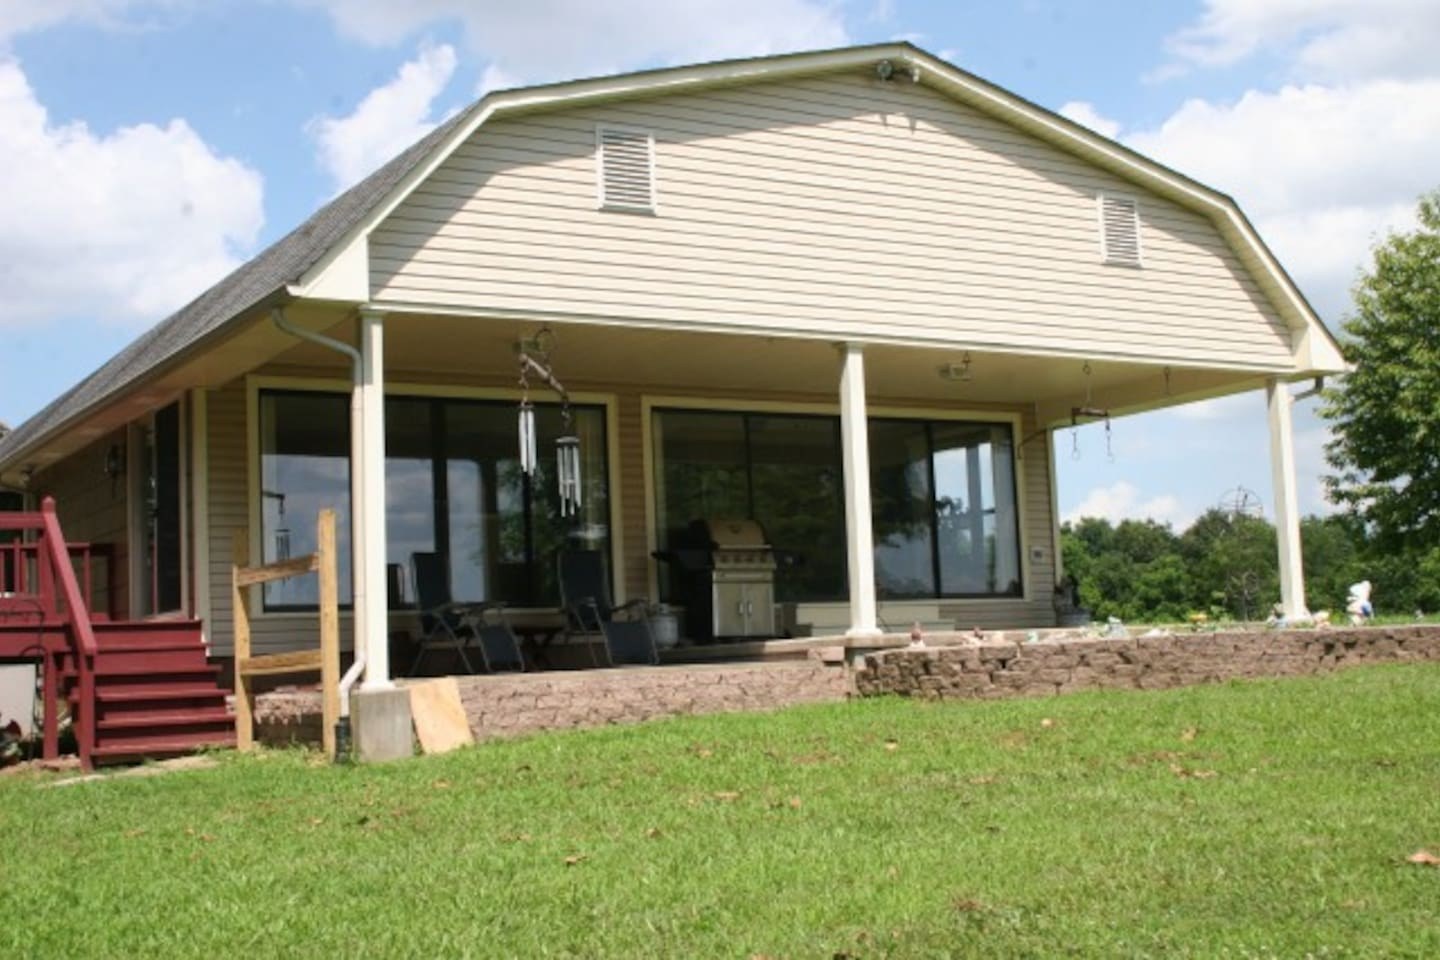 Front view of covered porch.